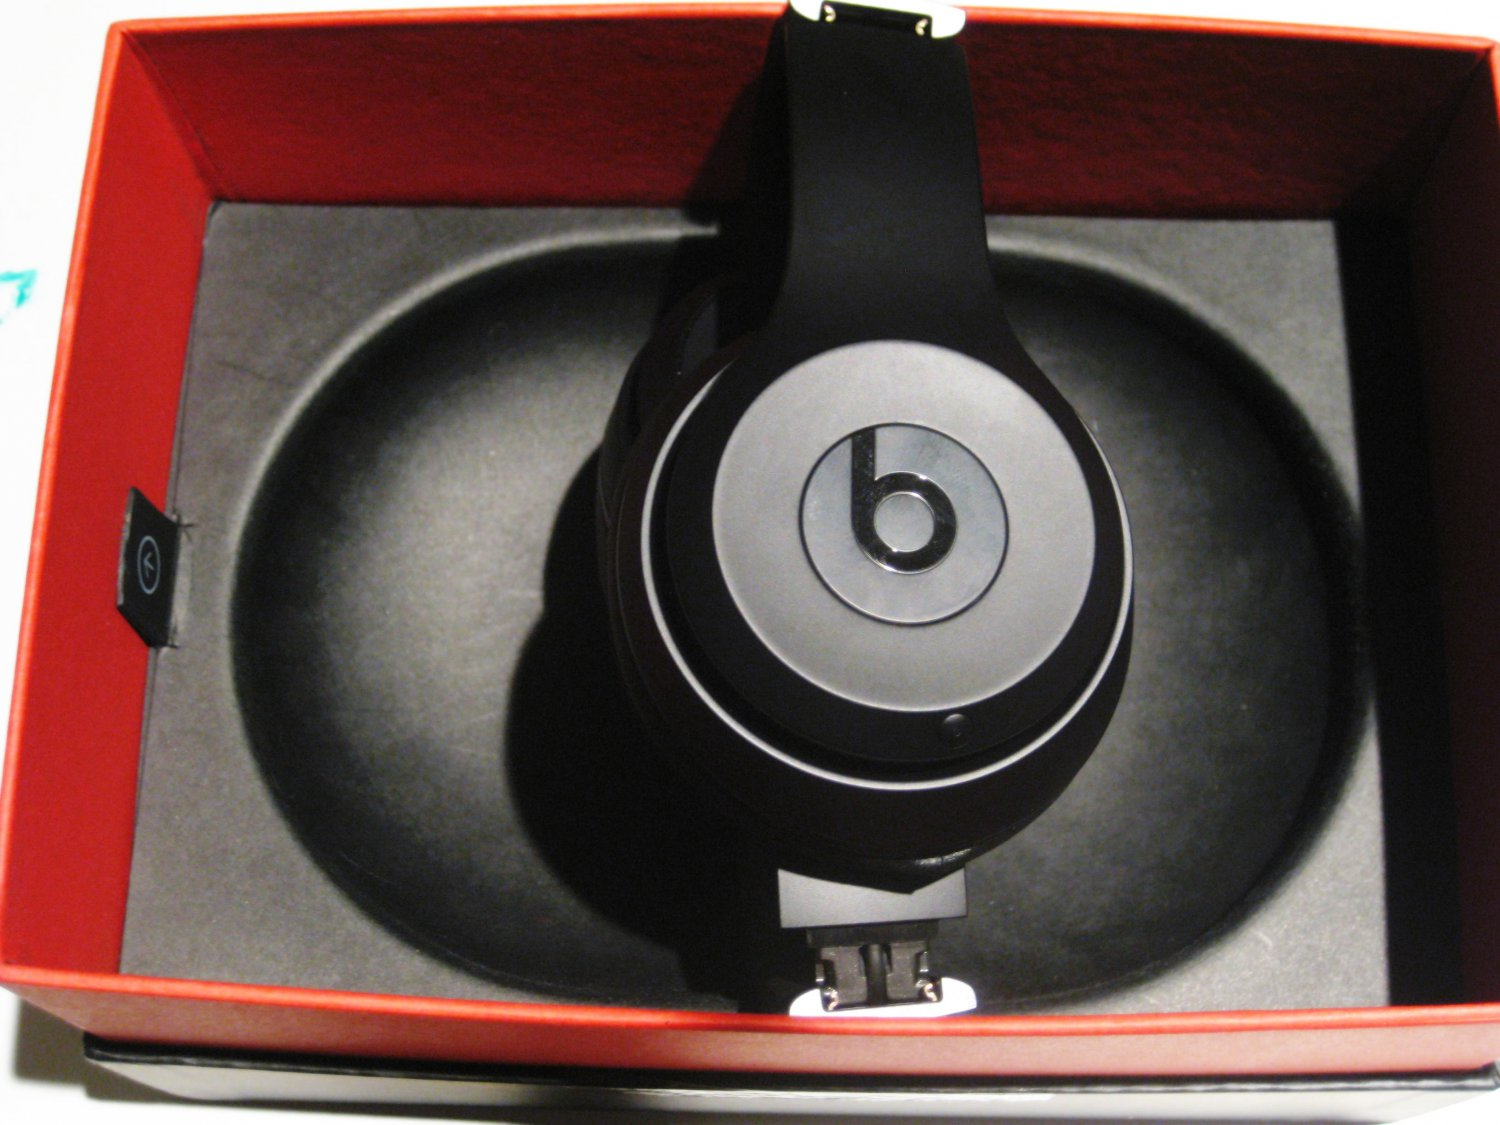 Like New Beats by Dre Studio 3 Bluetooth Over-Ear Headphones, Black